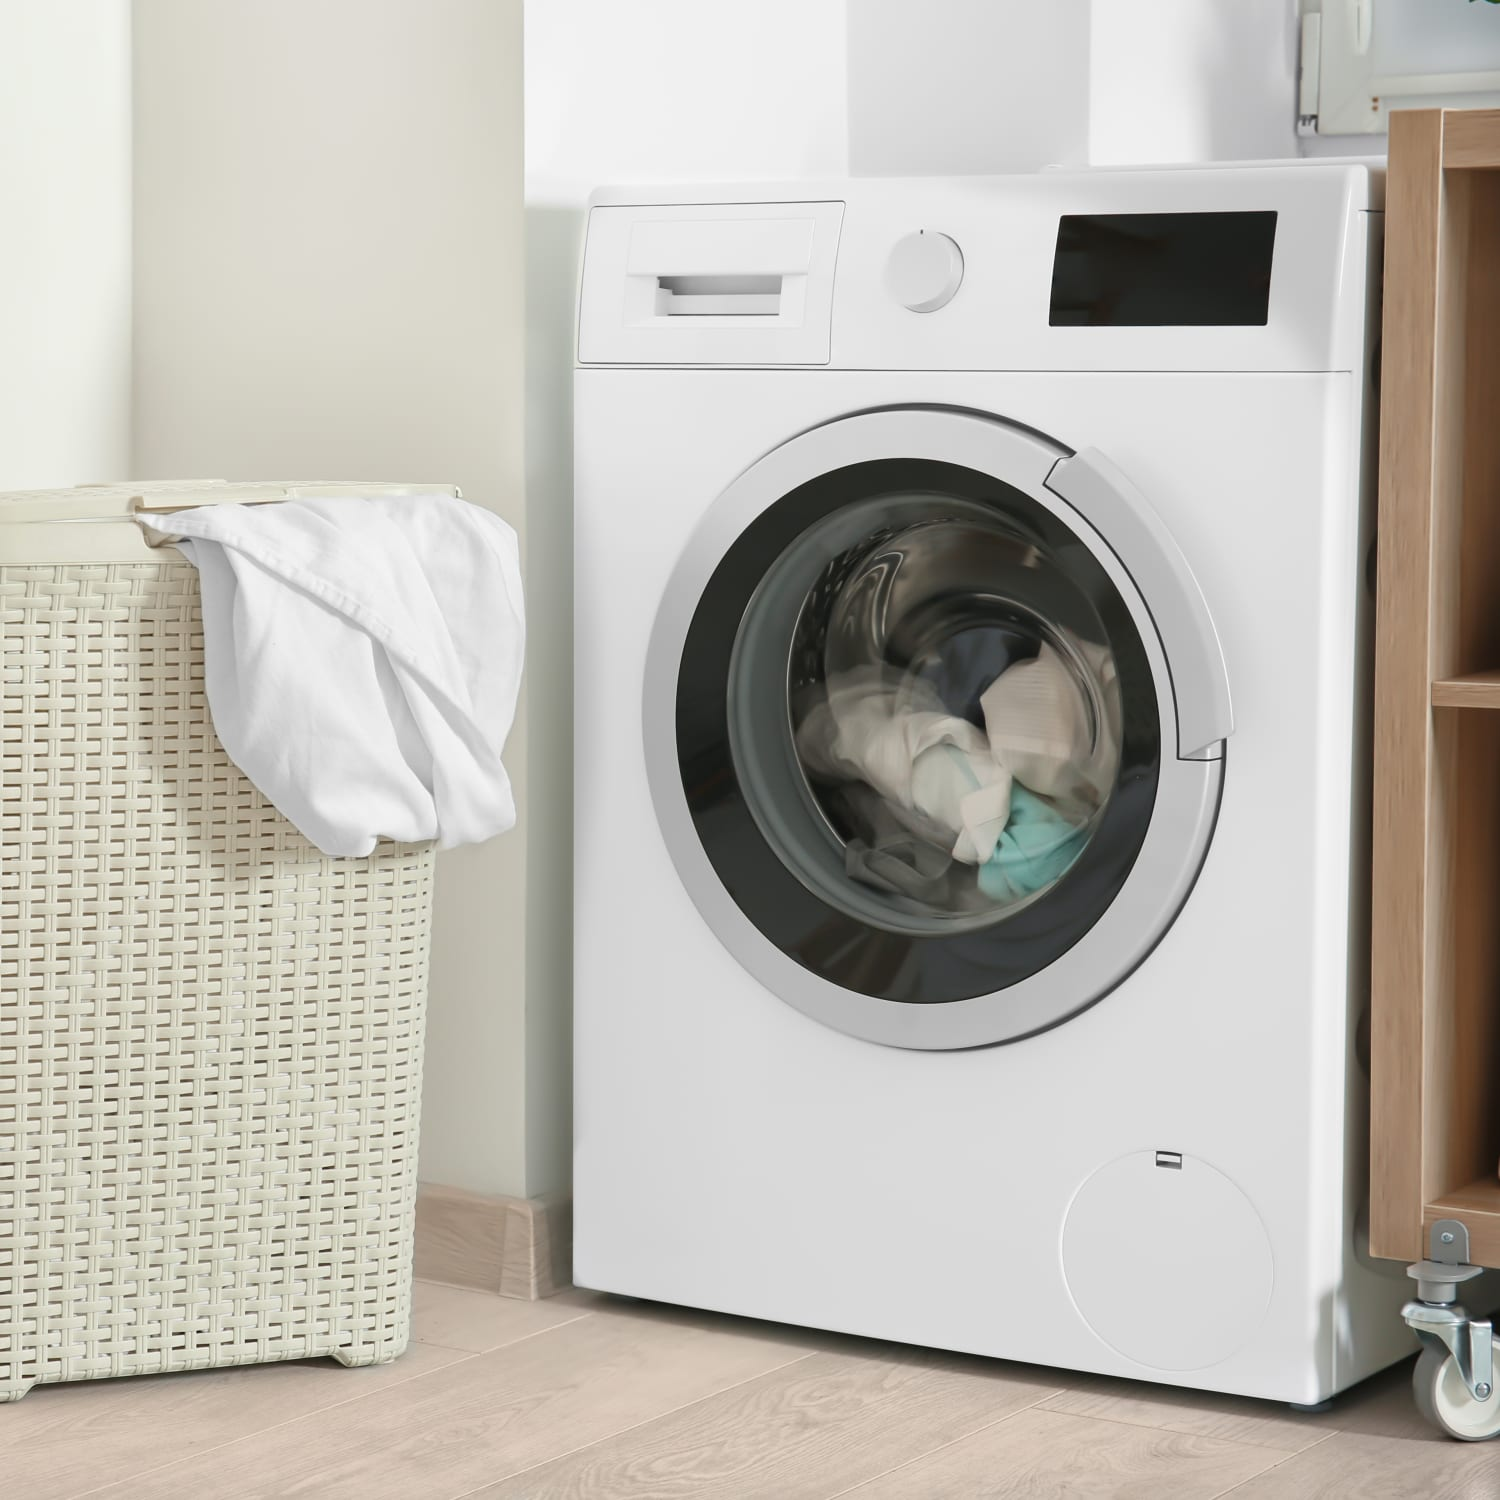 How To Make Your Clothes Smell Good In The Dryer how long can you leave wet clothes in the washer